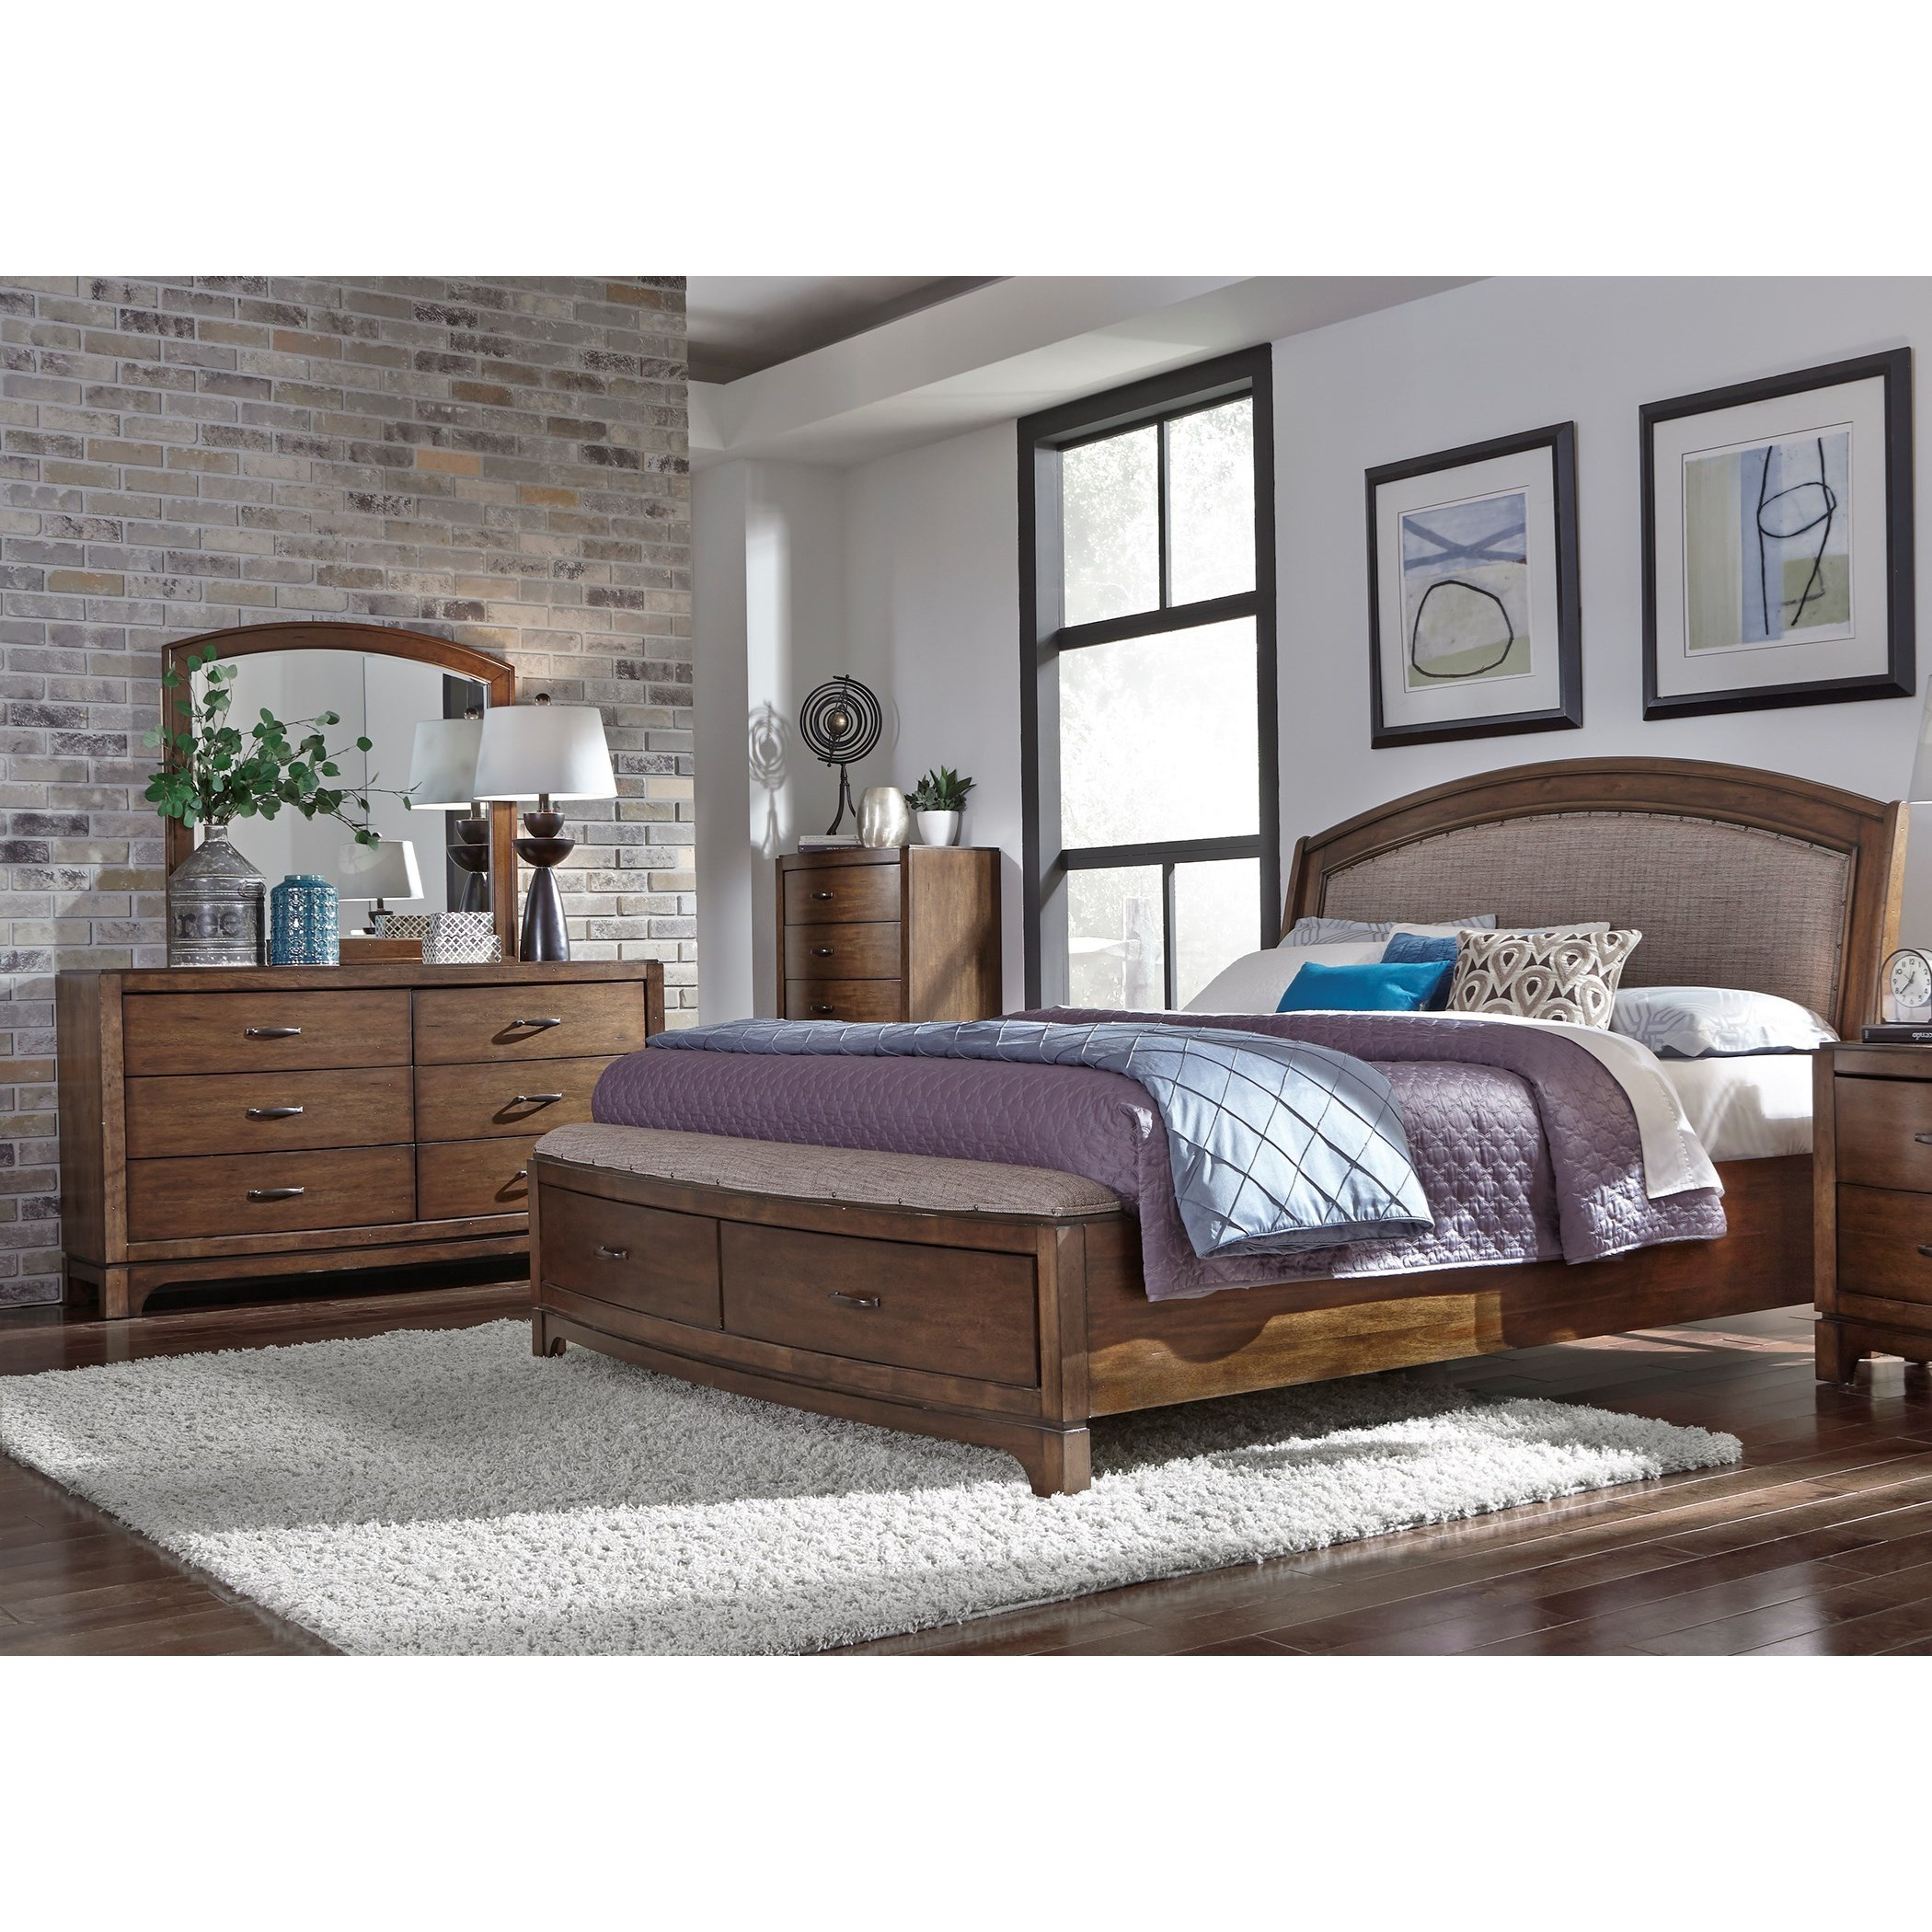 Avalon III Queen Bedroom Group by Sarah Randolph Designs at Virginia Furniture Market